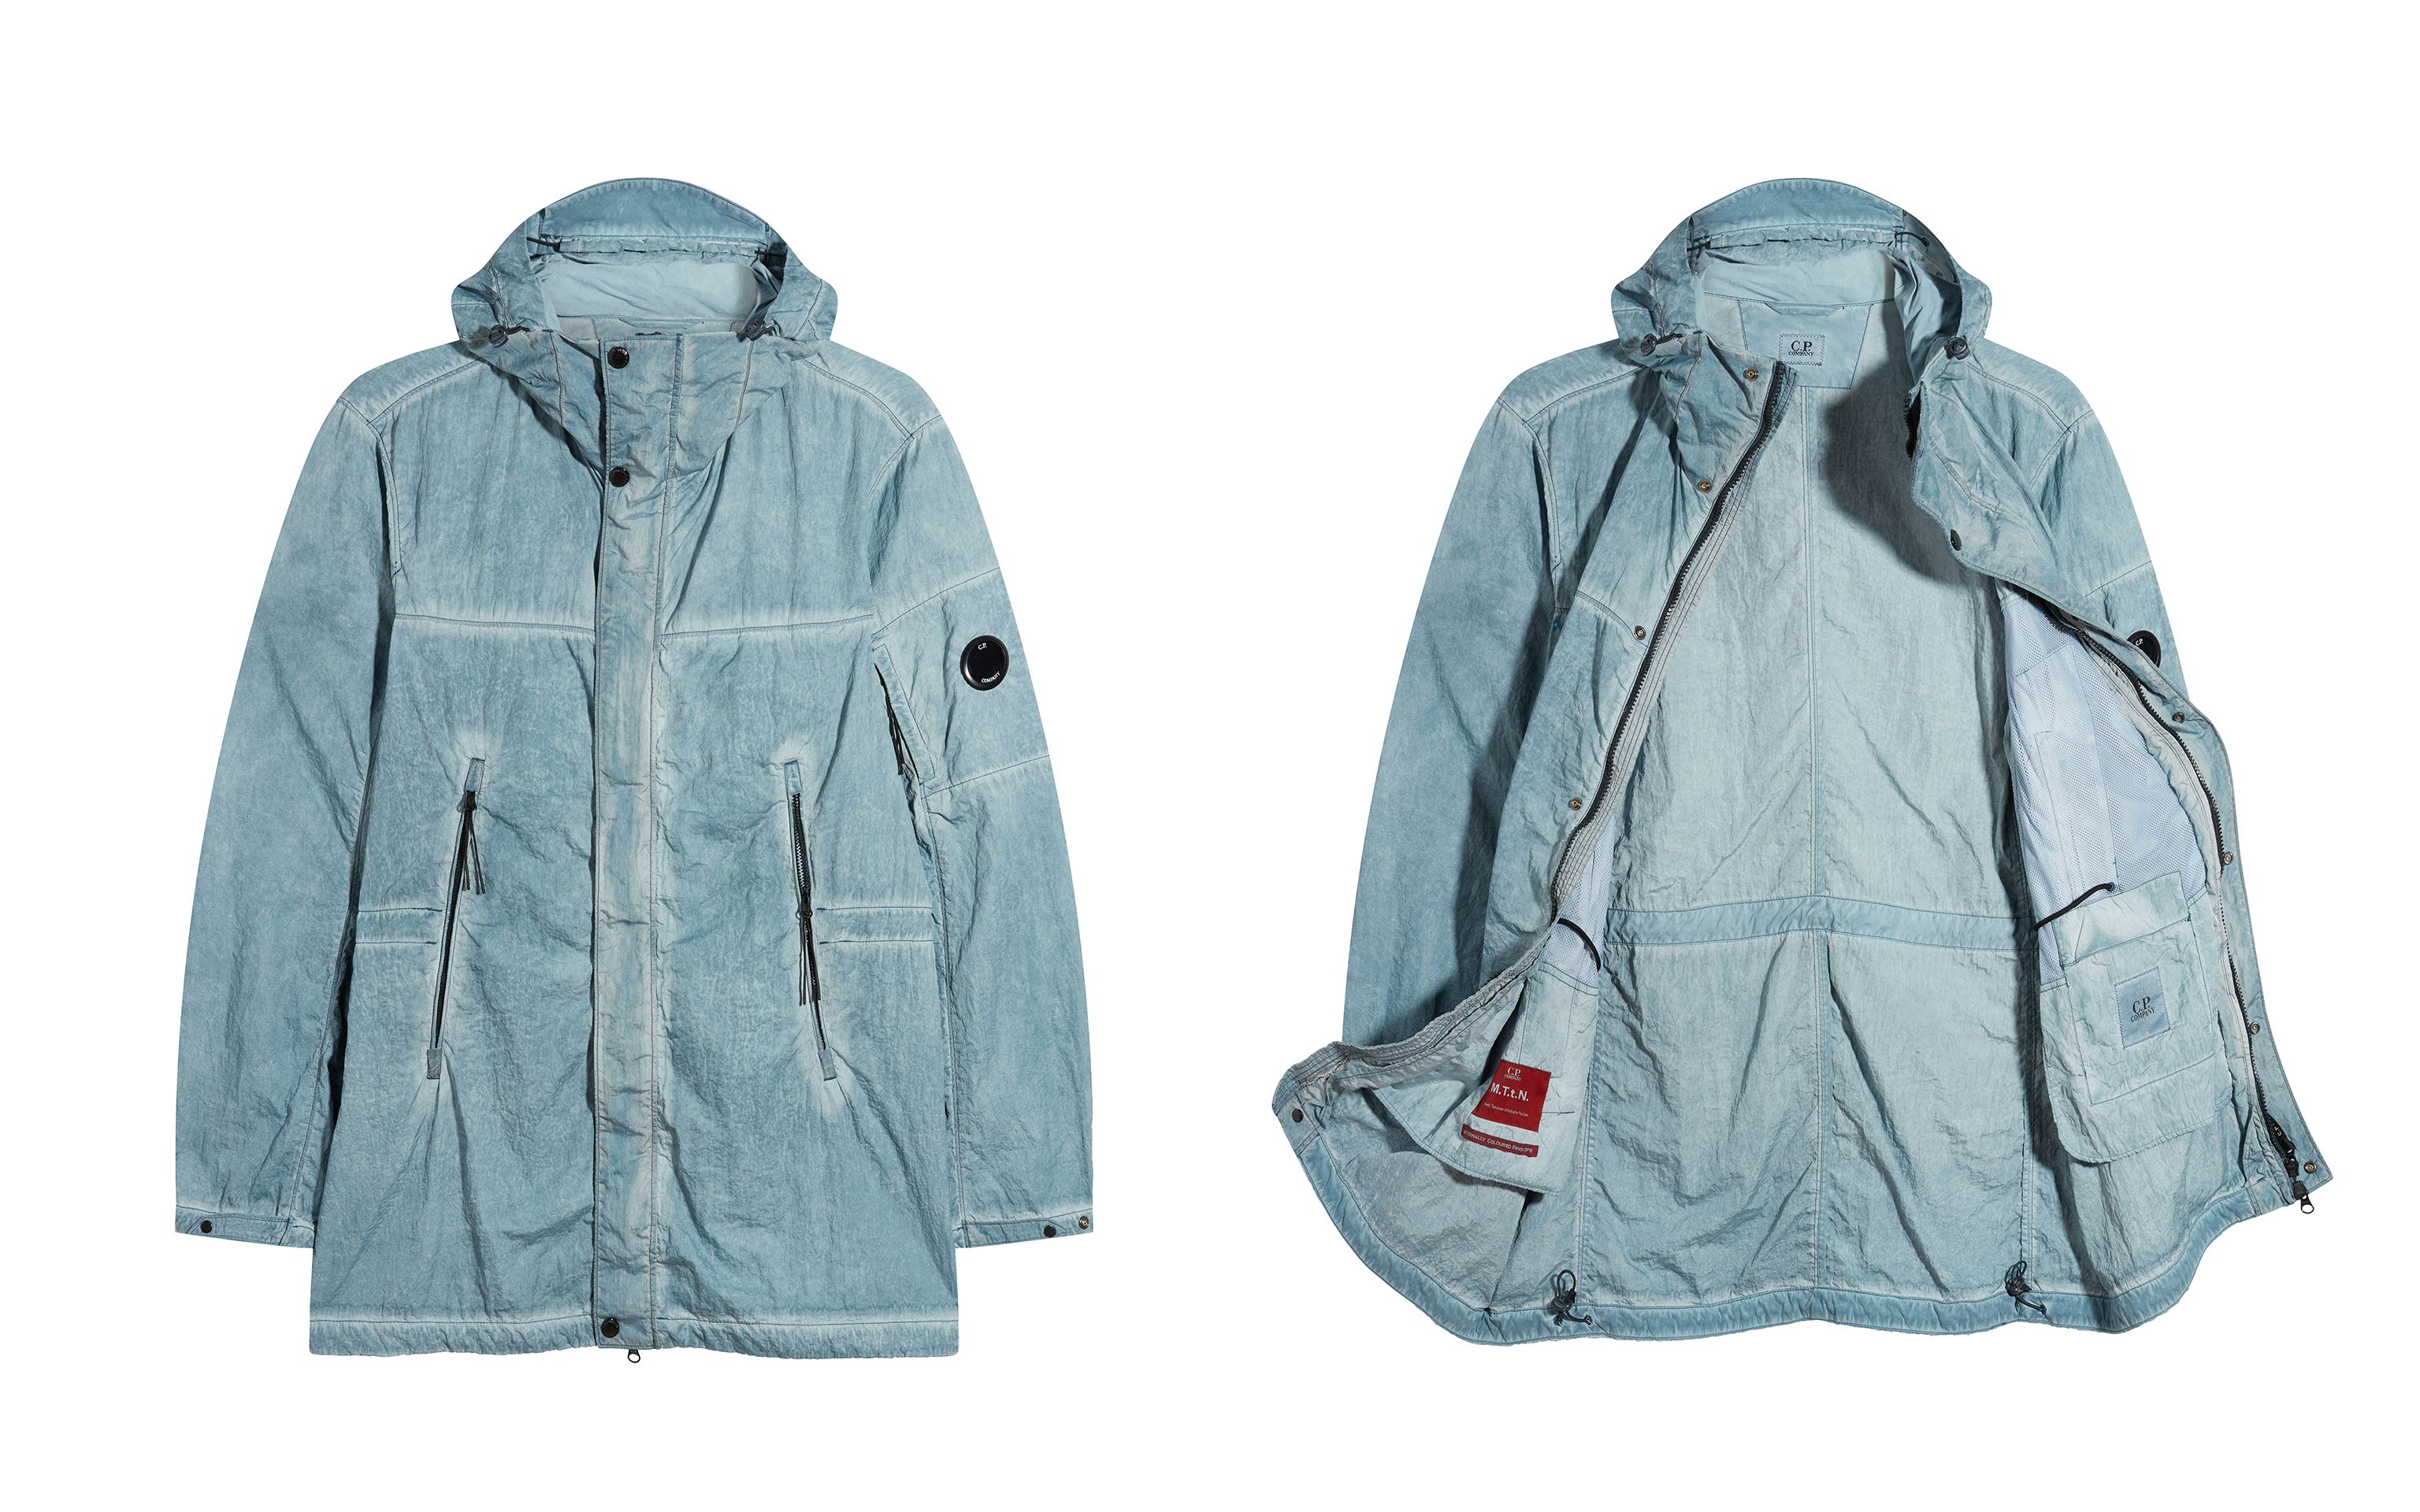 Picture of two bright blue colour C.P. Company raincoats one open and the other closed, both on white background